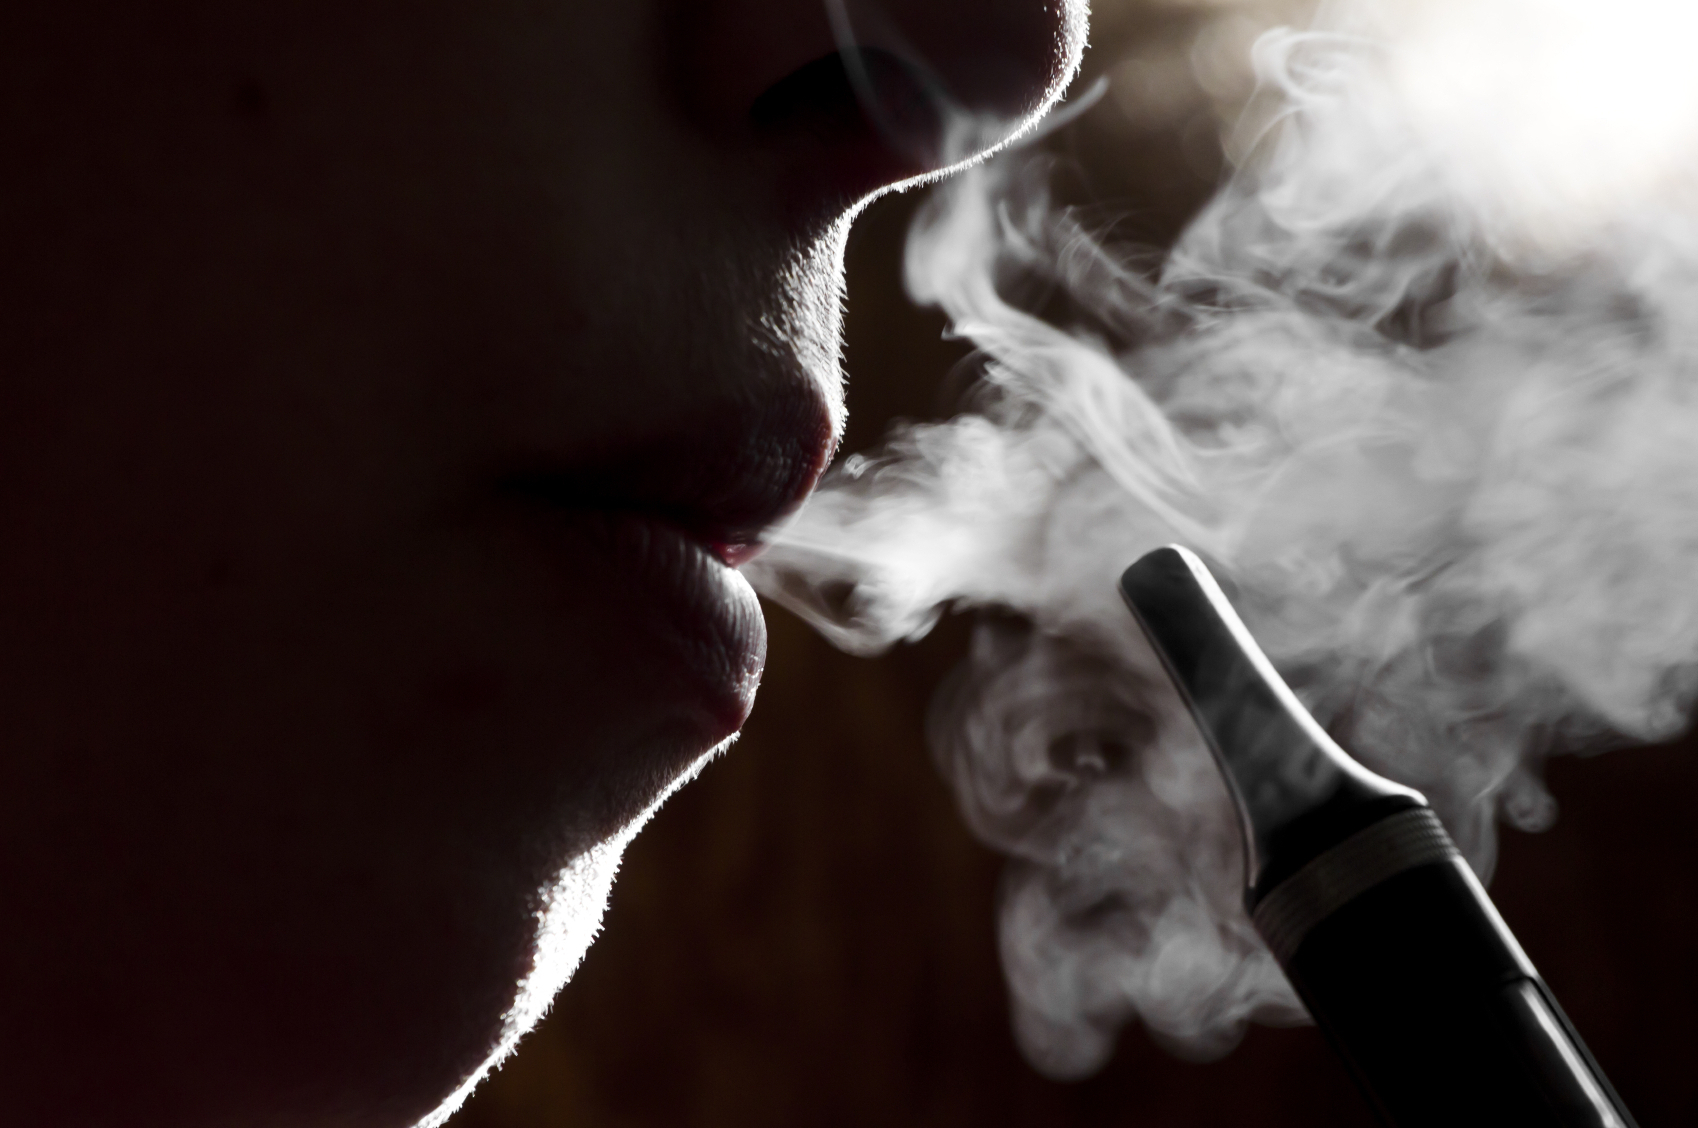 Most E-Cigarette Users Are Current And Ex-Smokers, Not Newbies